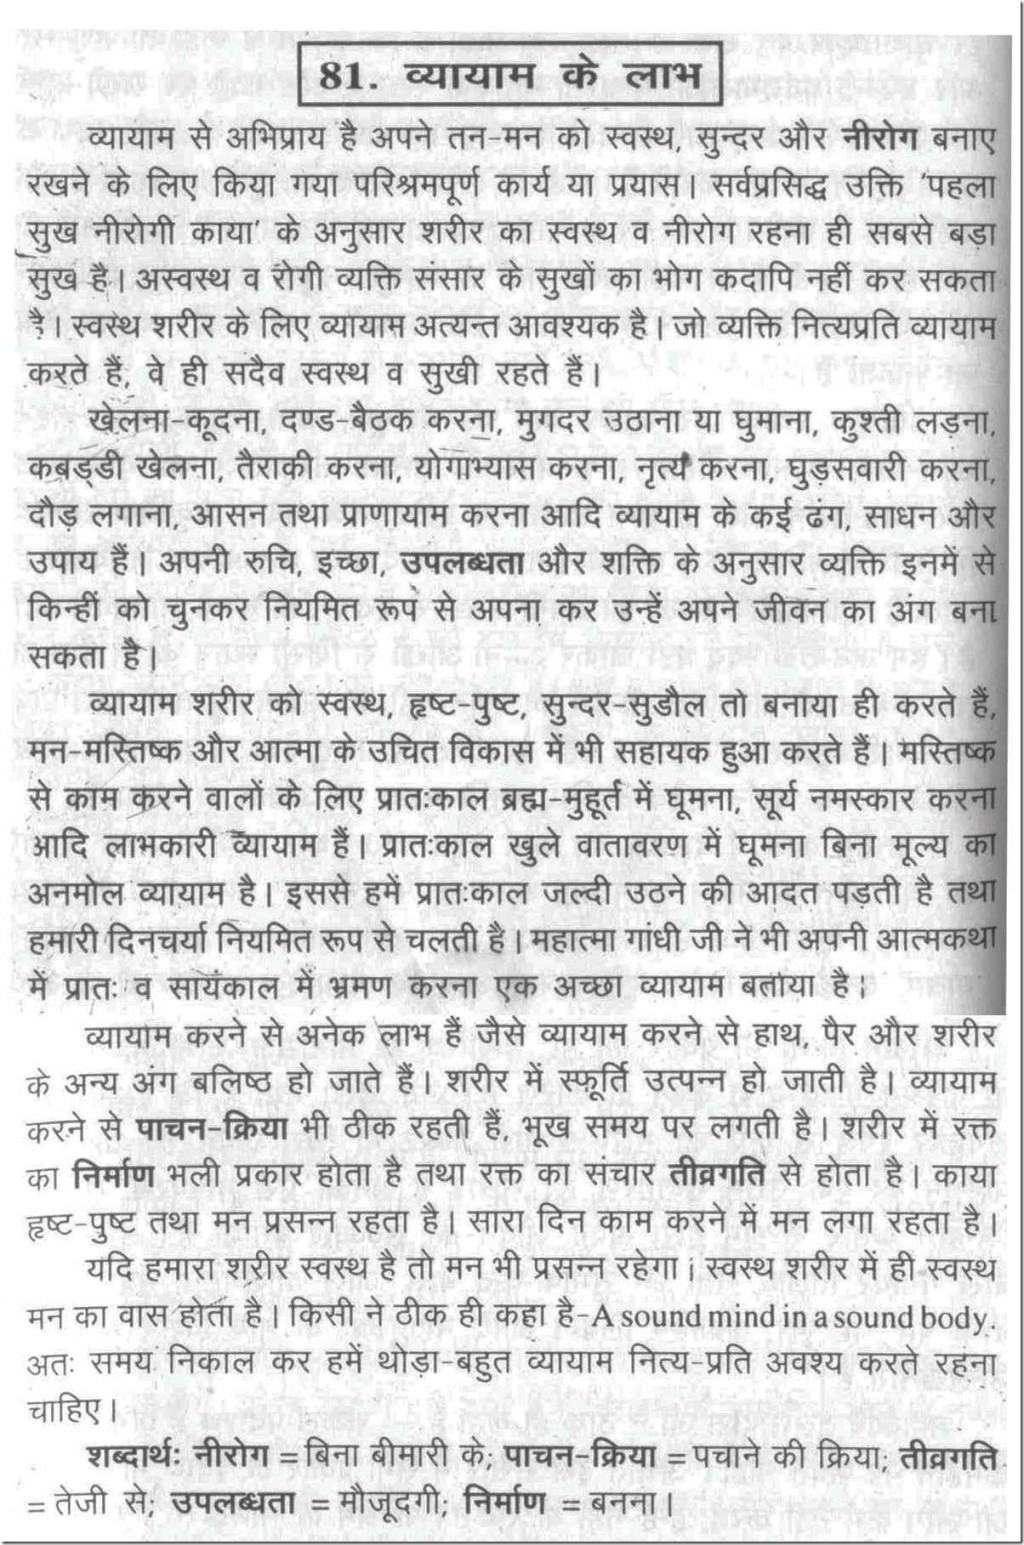 011 2563478896 Essay On Health And Fitness Through Food Good Habits In Hindi Exceptional Habit Wikipedia Eating Large